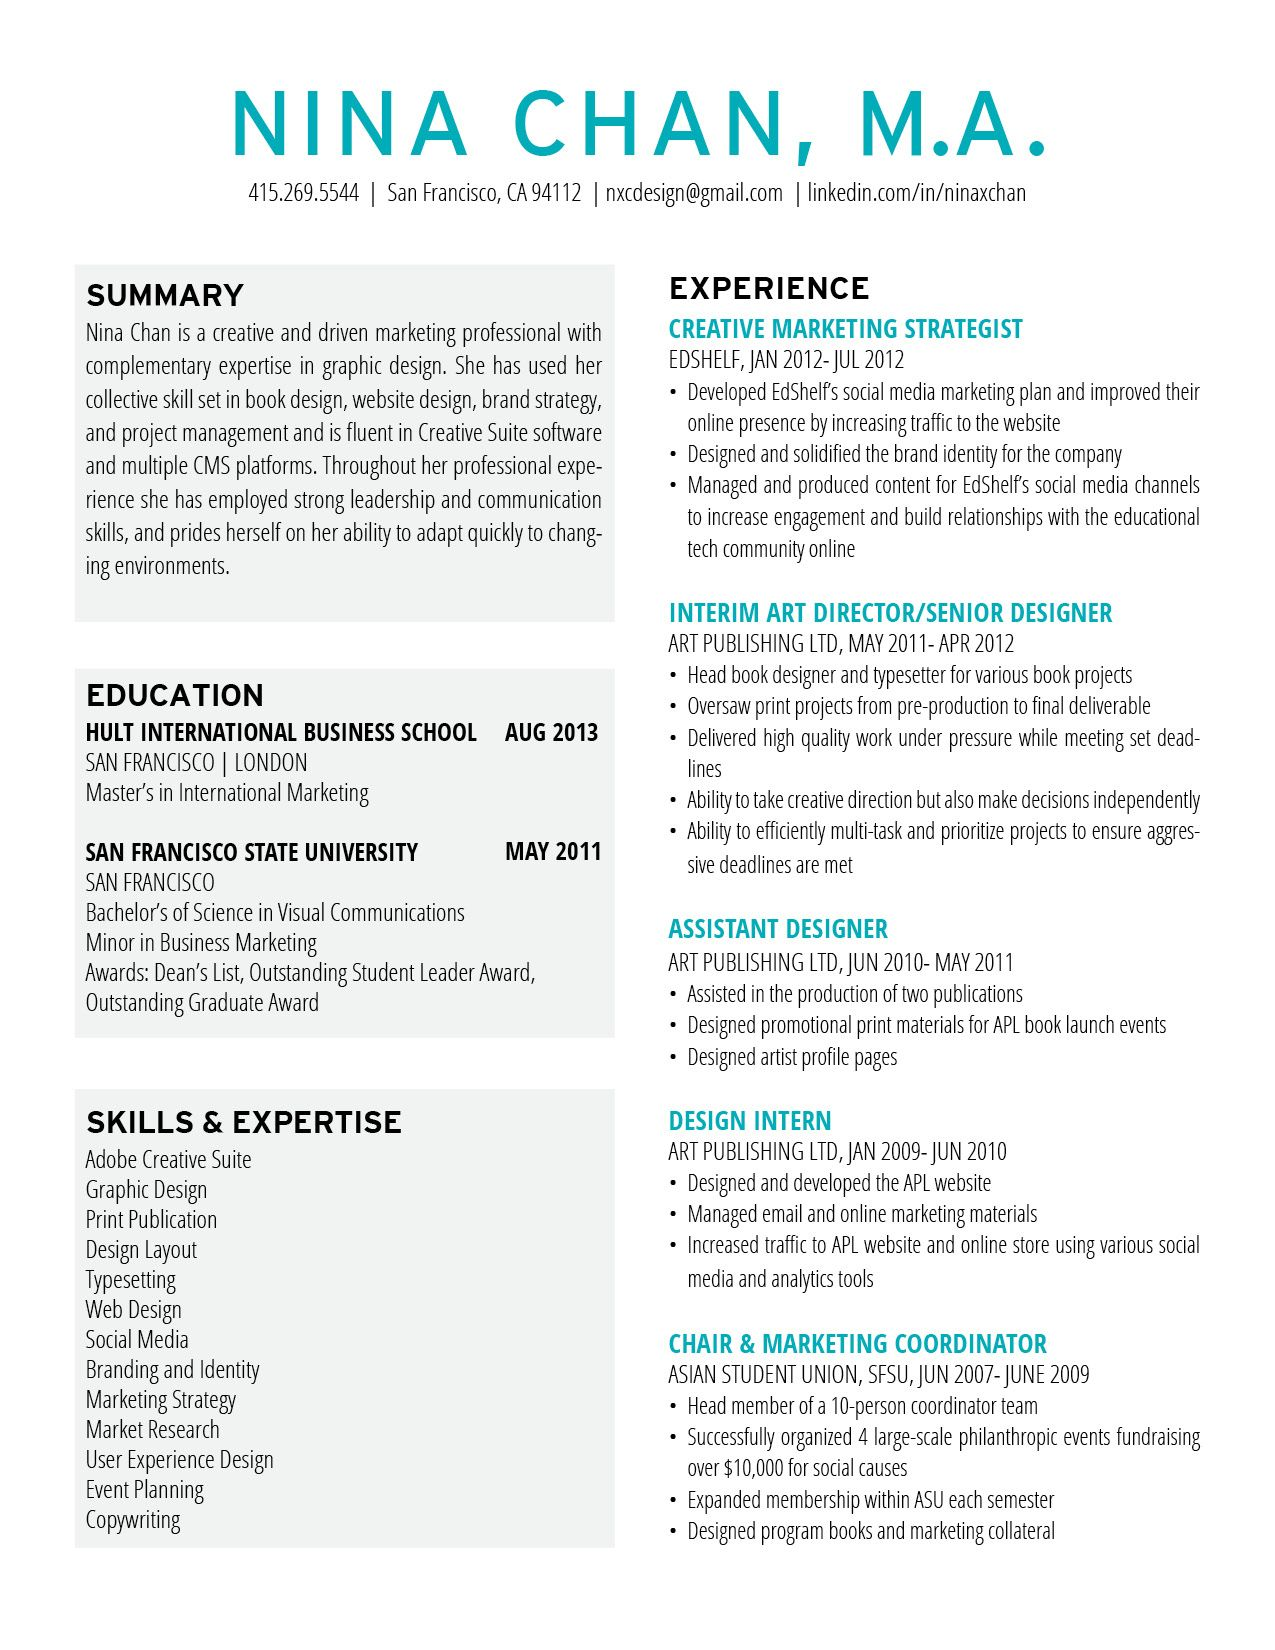 @ninachan Resume Design #marketing #resume #resumedesign #layout #indesign # Designer  Resume Designer Online